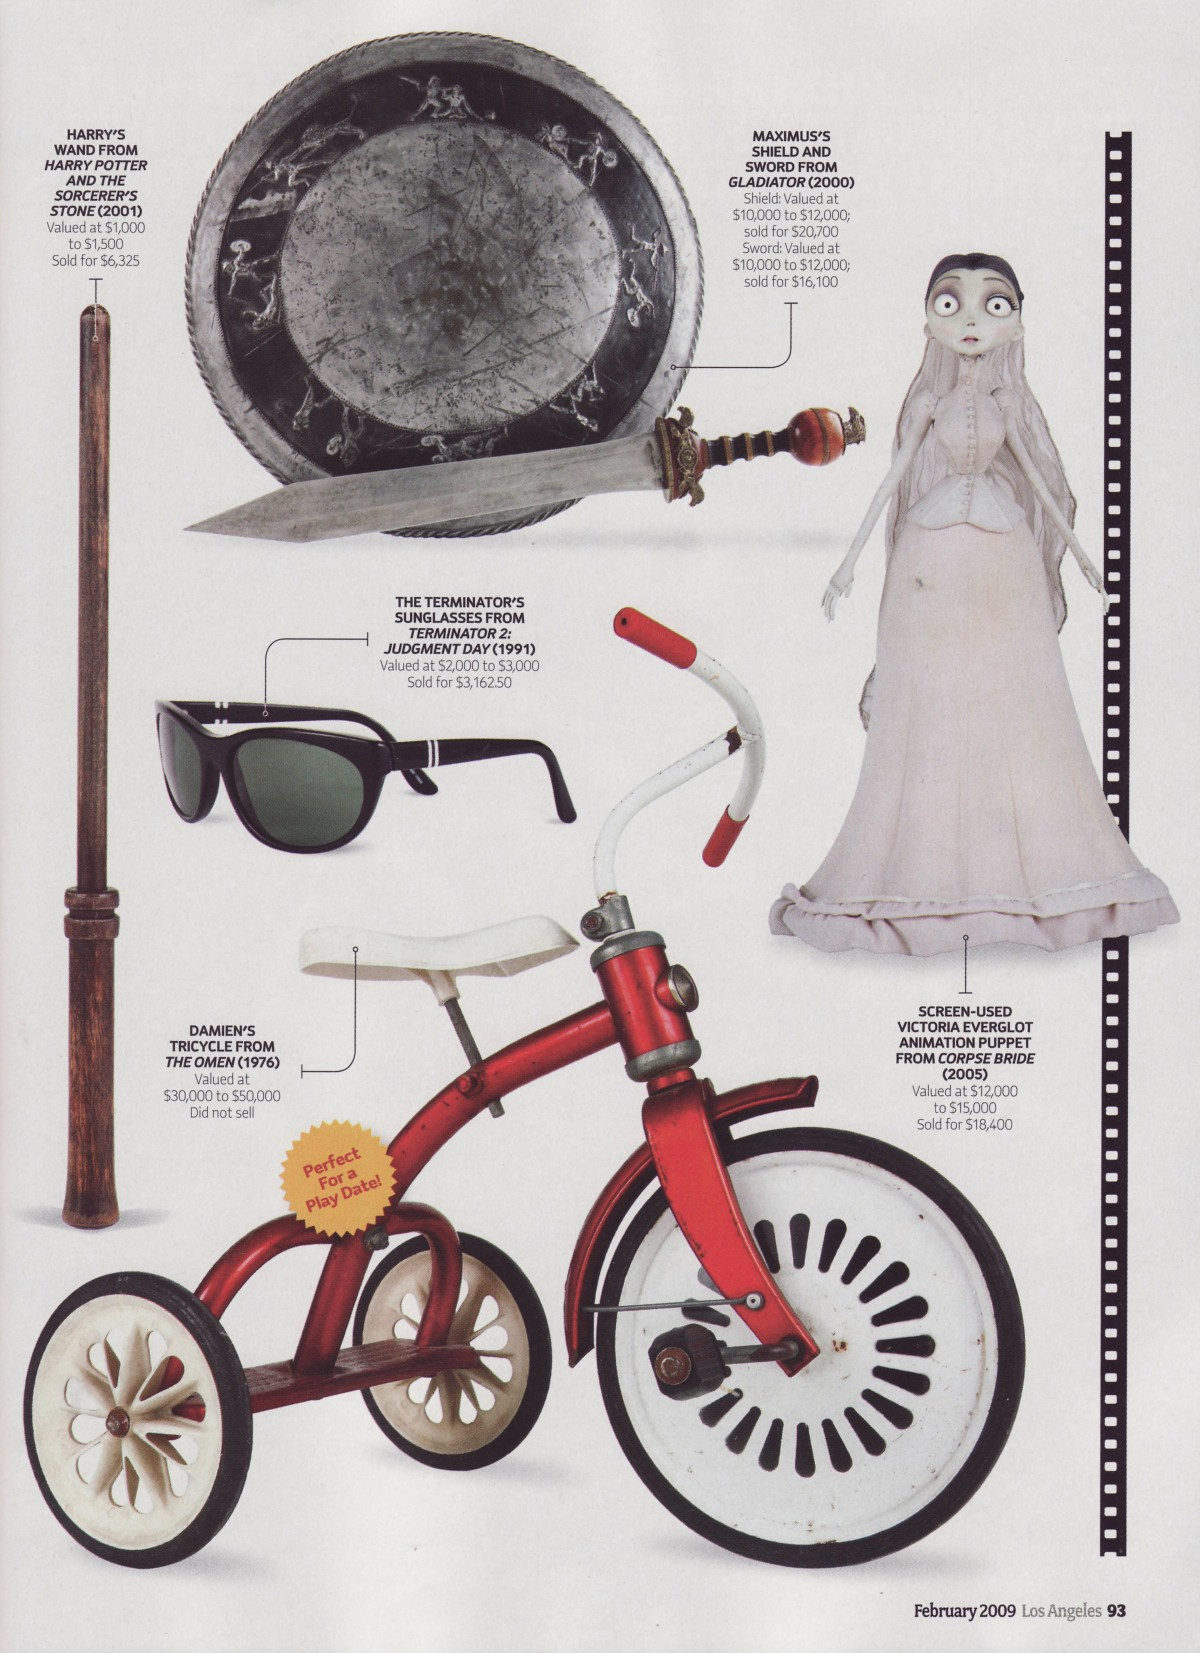 los angeles magazine, a shield and sword, a tricycle, the terminators sunglasses, corpse bride figurine and harry potters wand